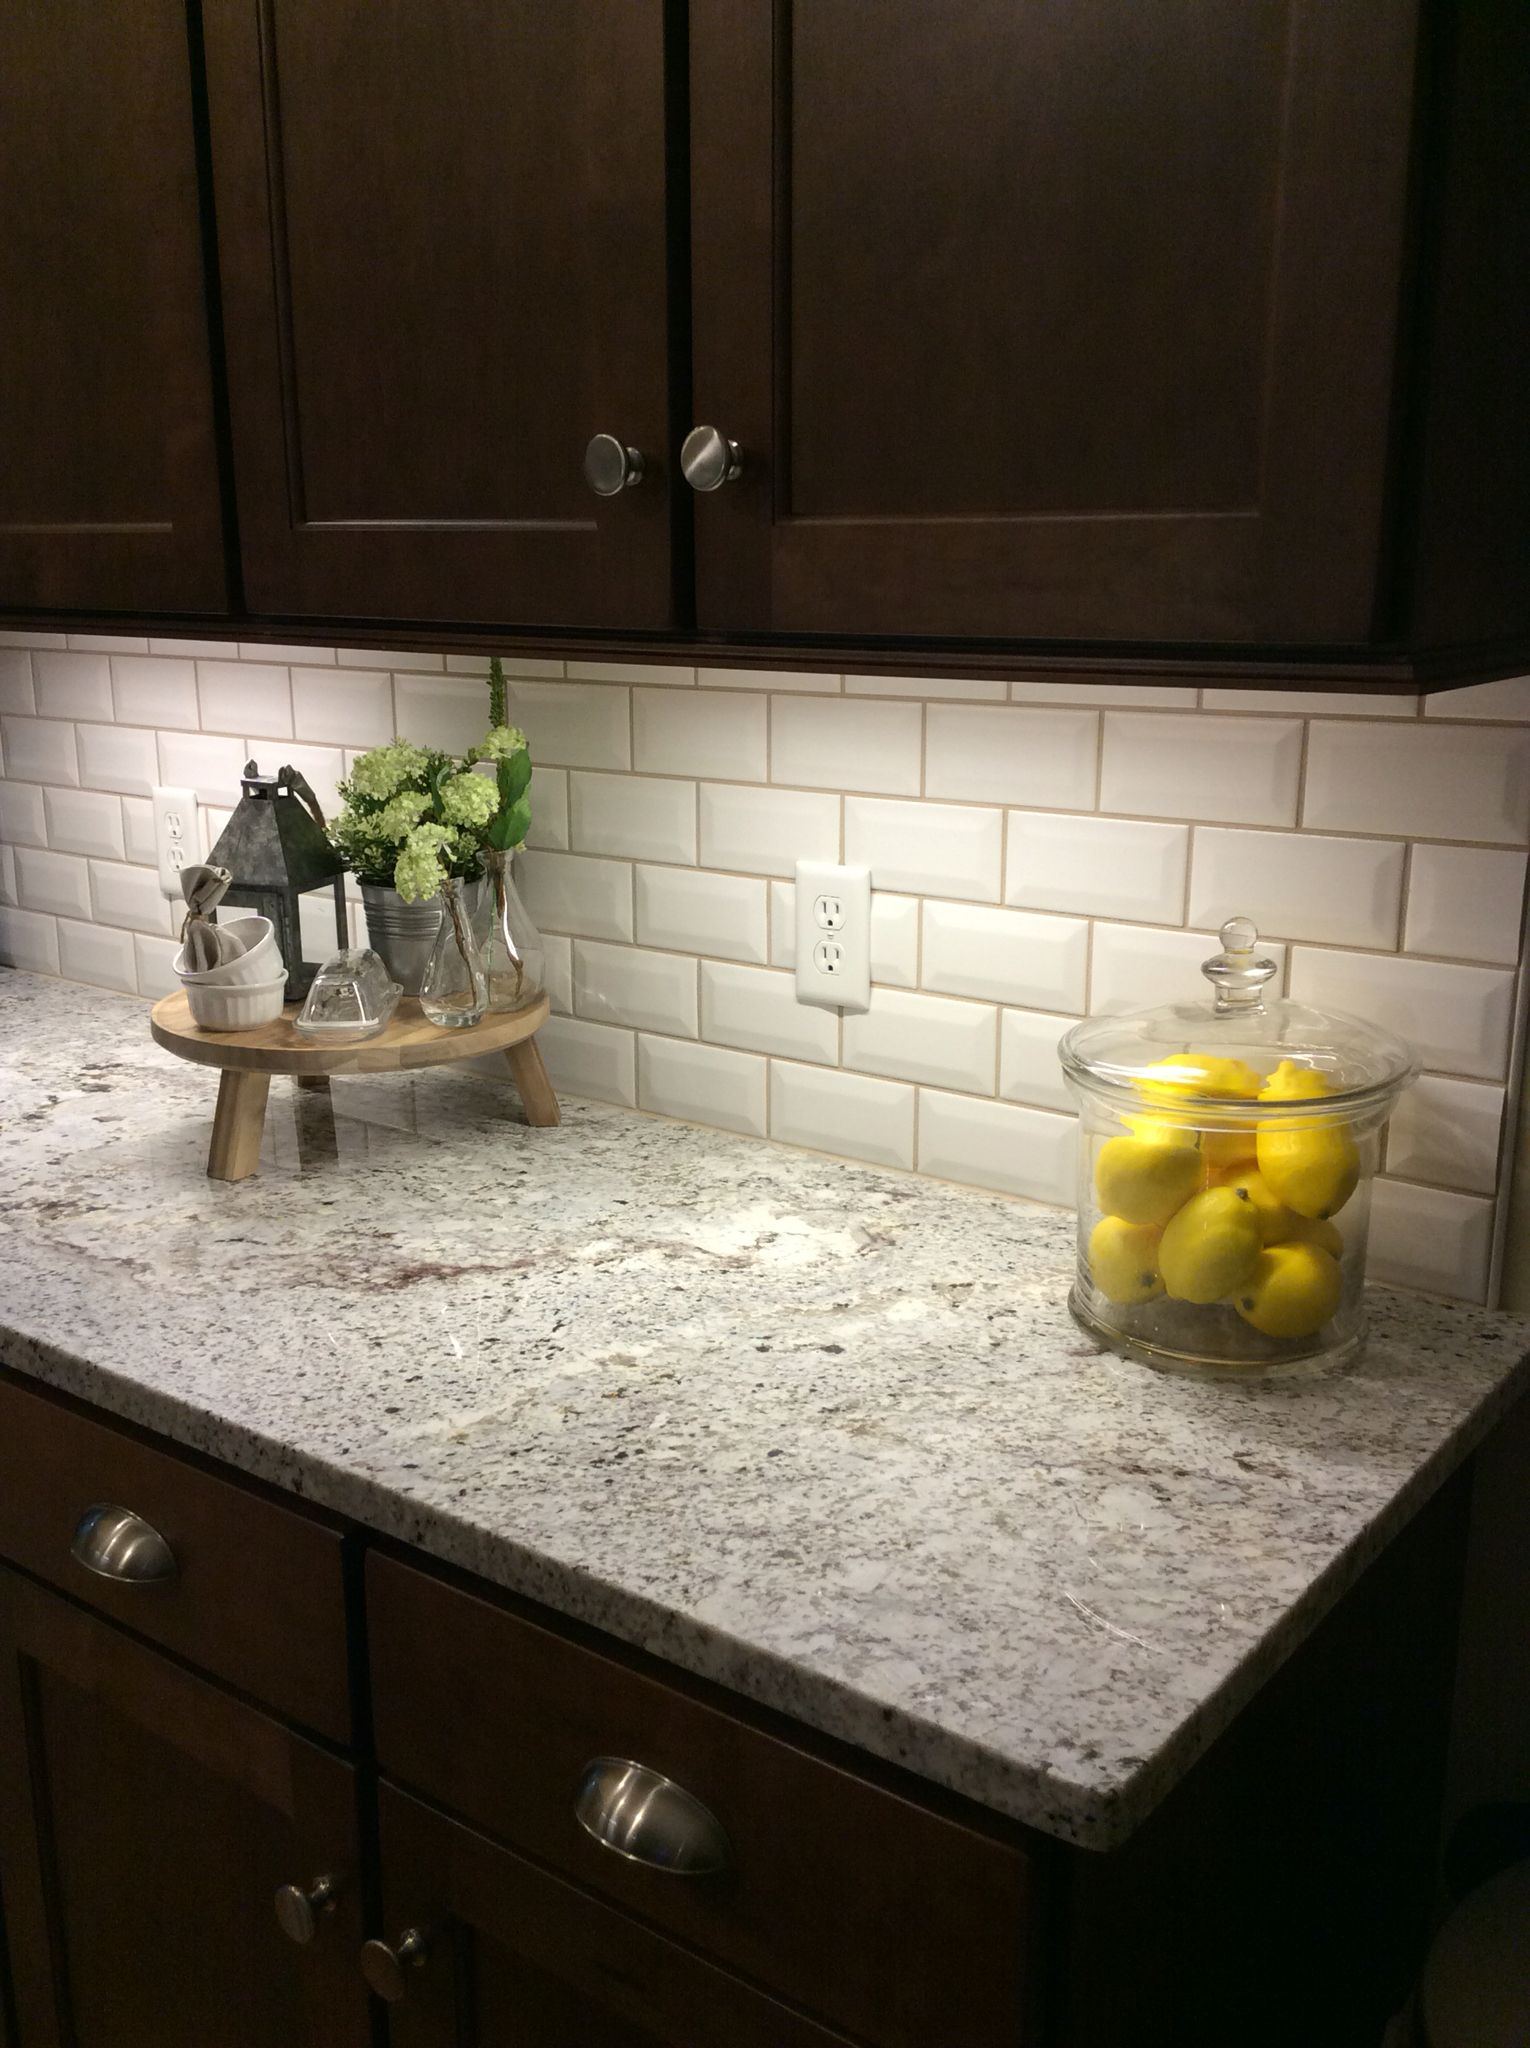 Merveilleux Andino White Granite, Diamond White Beveled Matte Finish Subway Tile